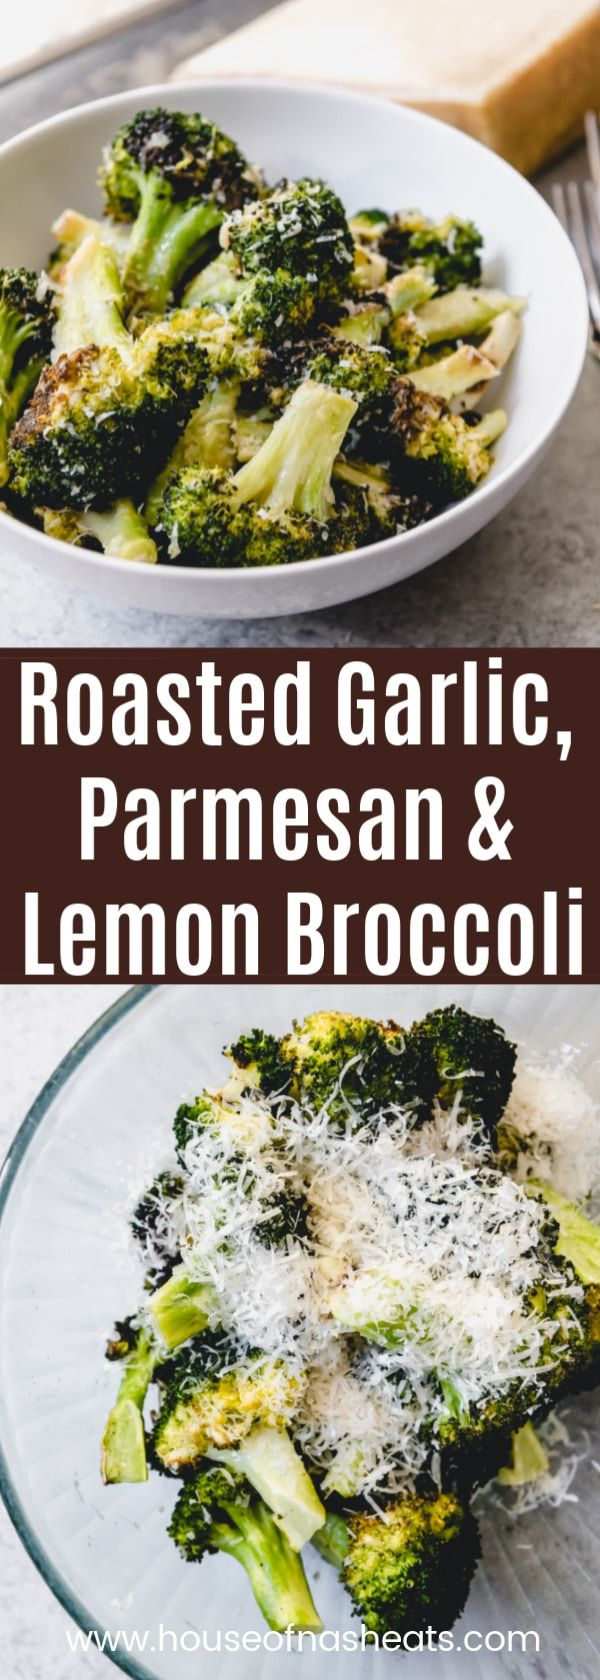 Oven Roasted Broccoli with Parmesan and Lemon images